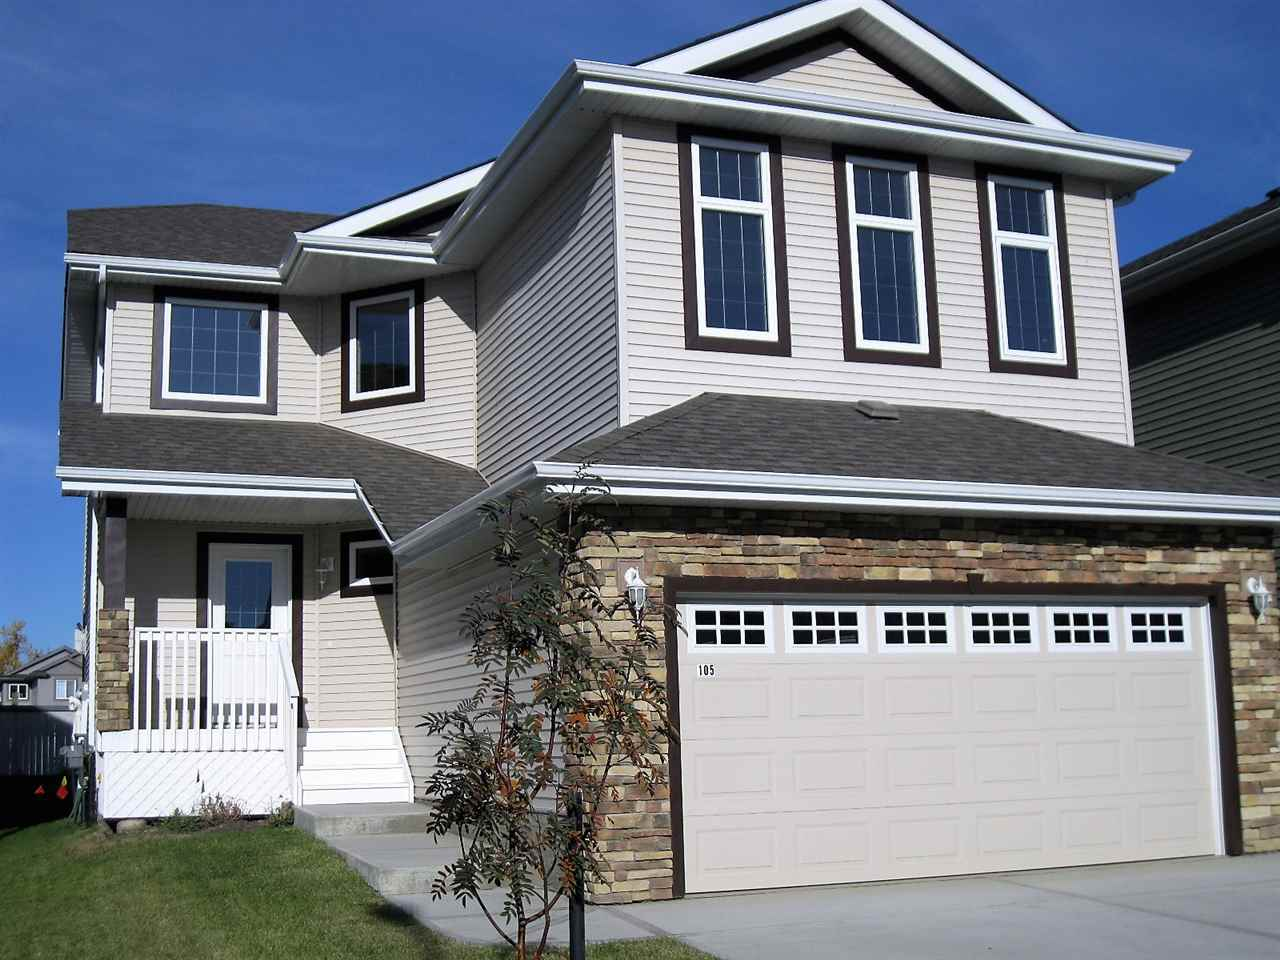 NEVER LIVED IN!!! Will you know quality when you see/feel it? Of course you will!  This 2015 home is NEW NEW NEW! NEW!Stainless Steel appliances in the Kitchen! NEW Washer & Dryer on the main floor!  NEW Built-in-Vac! Stunning NEW hardwood, tile and Carpet!  2,136sq/ft is SPACIOUS SPACIOUS SPACIOUS!  SPACIOUS Front entry open to the 2nd floor!  SPACIOUS formal Dining/Flex room!  SPACIOUS kitchen/Living room! SPACIOUS 12x18' Back deck! SPACIOUS upper bonus room! SPACIOUS kids rooms!  SPACIOUS Master Bedroom with SPACIOUS Walk-in-closet!  SPACIOUS 4pc Ensuite with jetted corner tub! SPACIOUS front covered porch!  Garage is Drywalled and Insulated with windows in the insulated door! Lot is Landscaped!  There are soooo many upgrades in this SPACIOUS home! Motivated Seller!